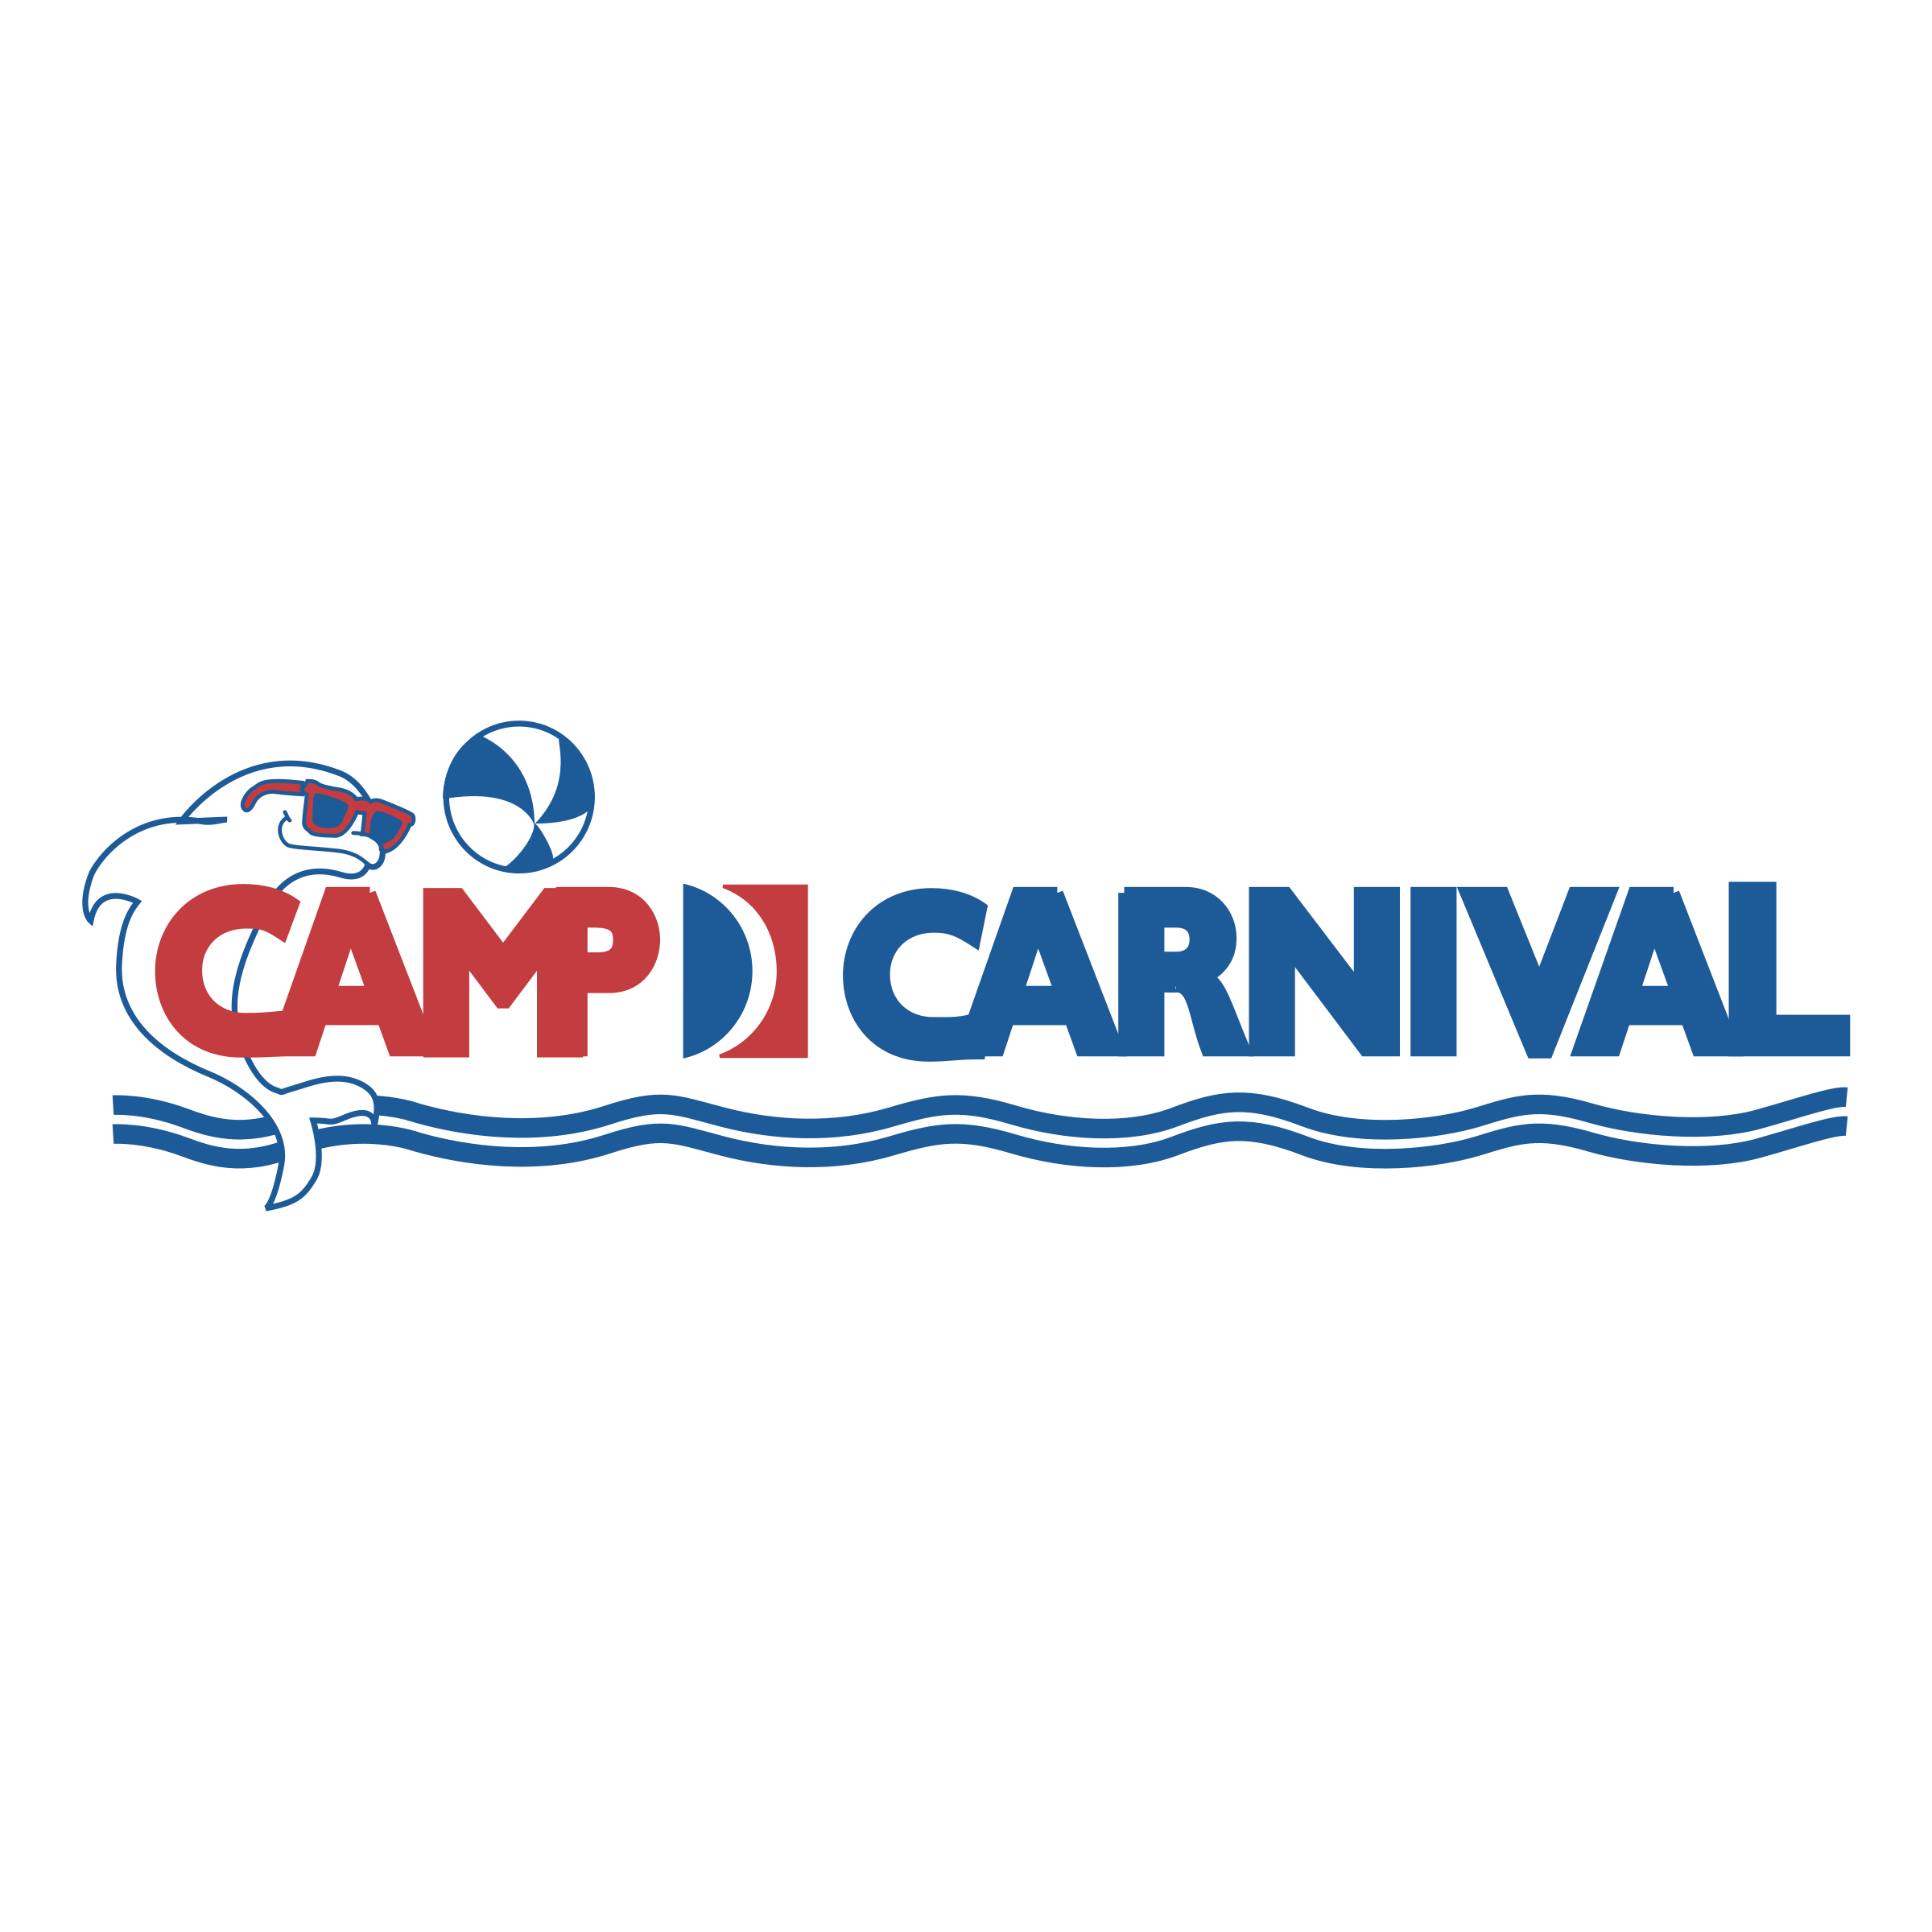 Camp Carnival Logo PNG Transparent & SVG Vector.